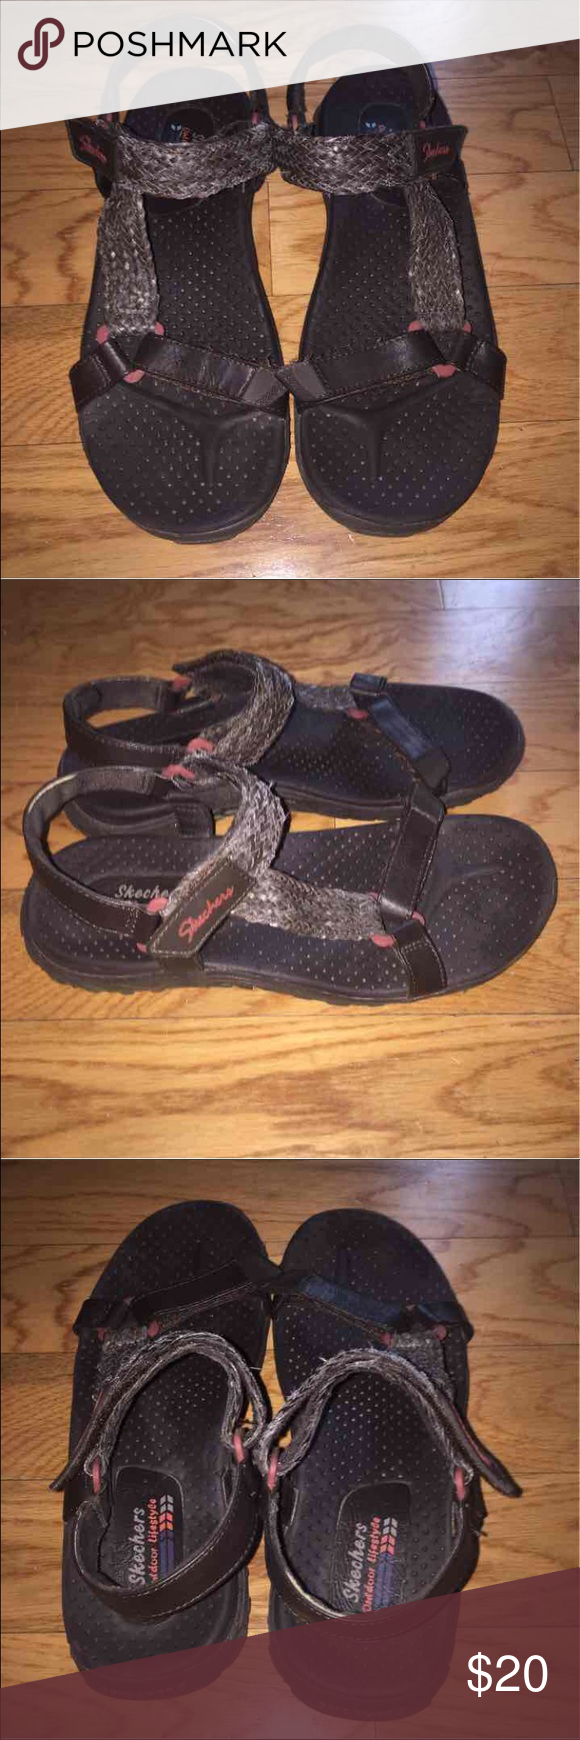 Skechers Outdoor Lifestyle Reggae sandals 7.5 Brown Sketchers Outdoor Lifestyle Reggae sandals size women's 7.5. Worn twice! Super comfortable! I wore them camping/hiking and my feet never hurt!   Tags: Chacos, Chaco, tevas, teva, sport, reef, sanuk, toms, Birkenstock Skechers Shoes Sandals